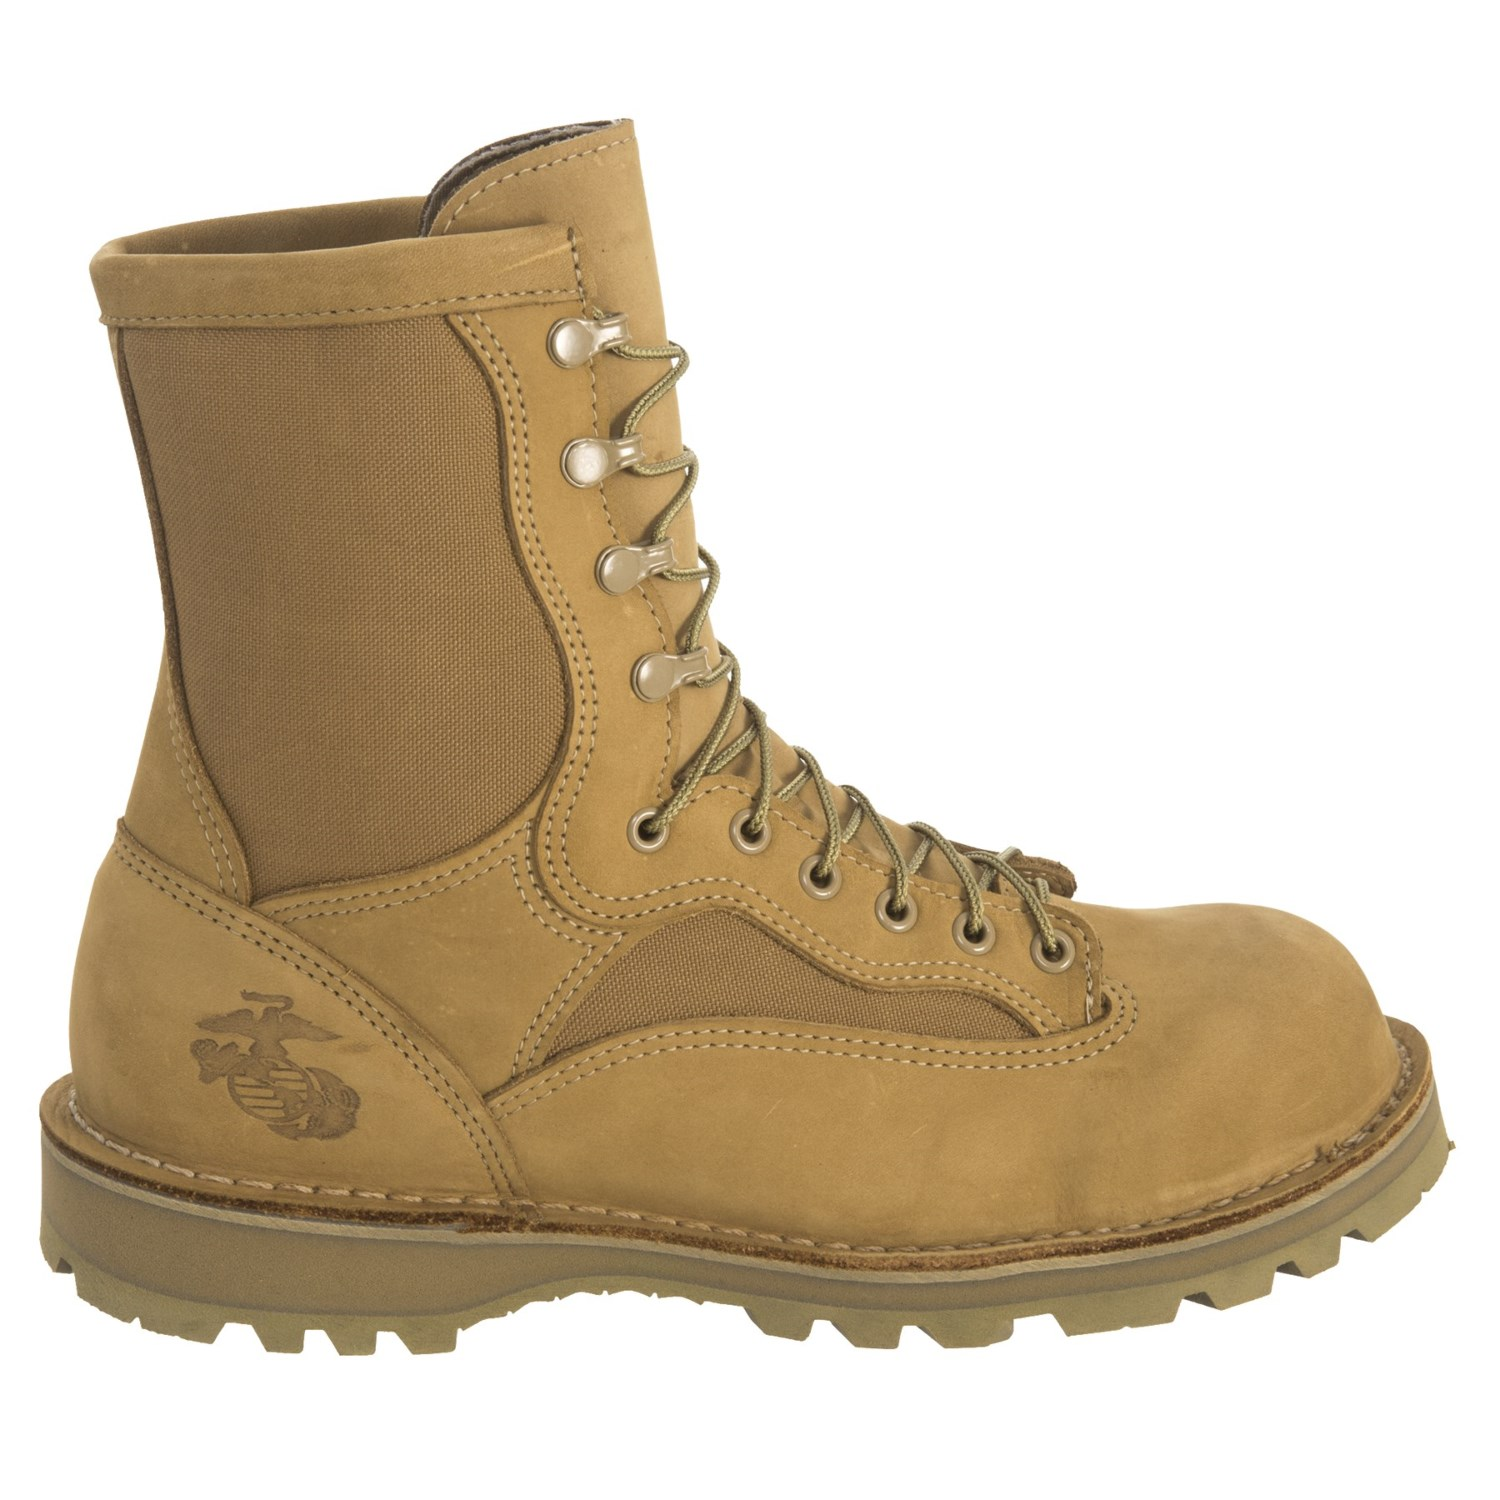 Danner Marine Expeditionary Boots (For Men) - Save 25% 6a0c1b05d